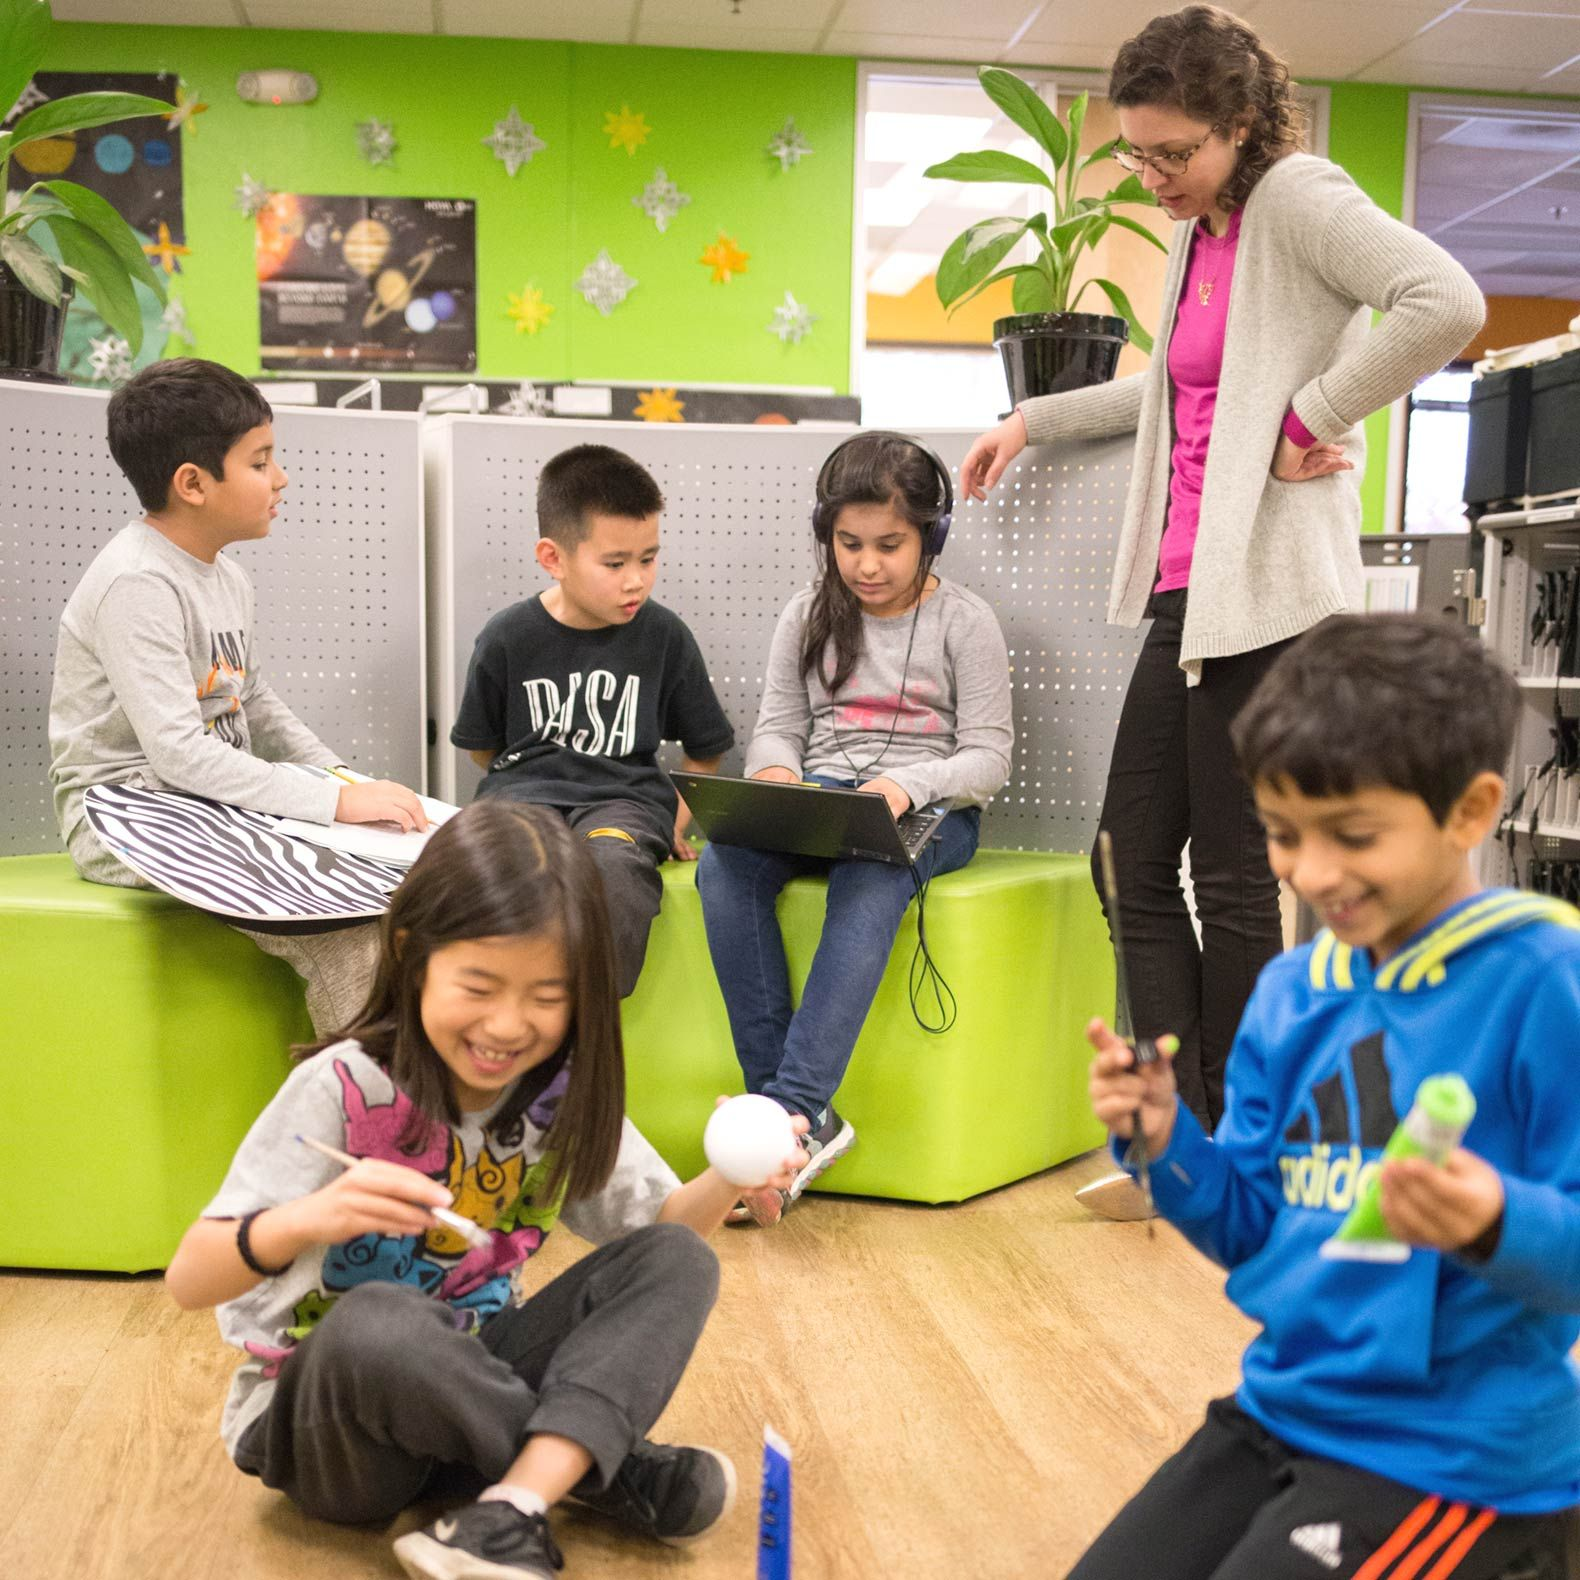 Competency-based transcript proponents like the Khan Lab School, pictured here, believe the new assessments are necessary to foster 21st-century skills.